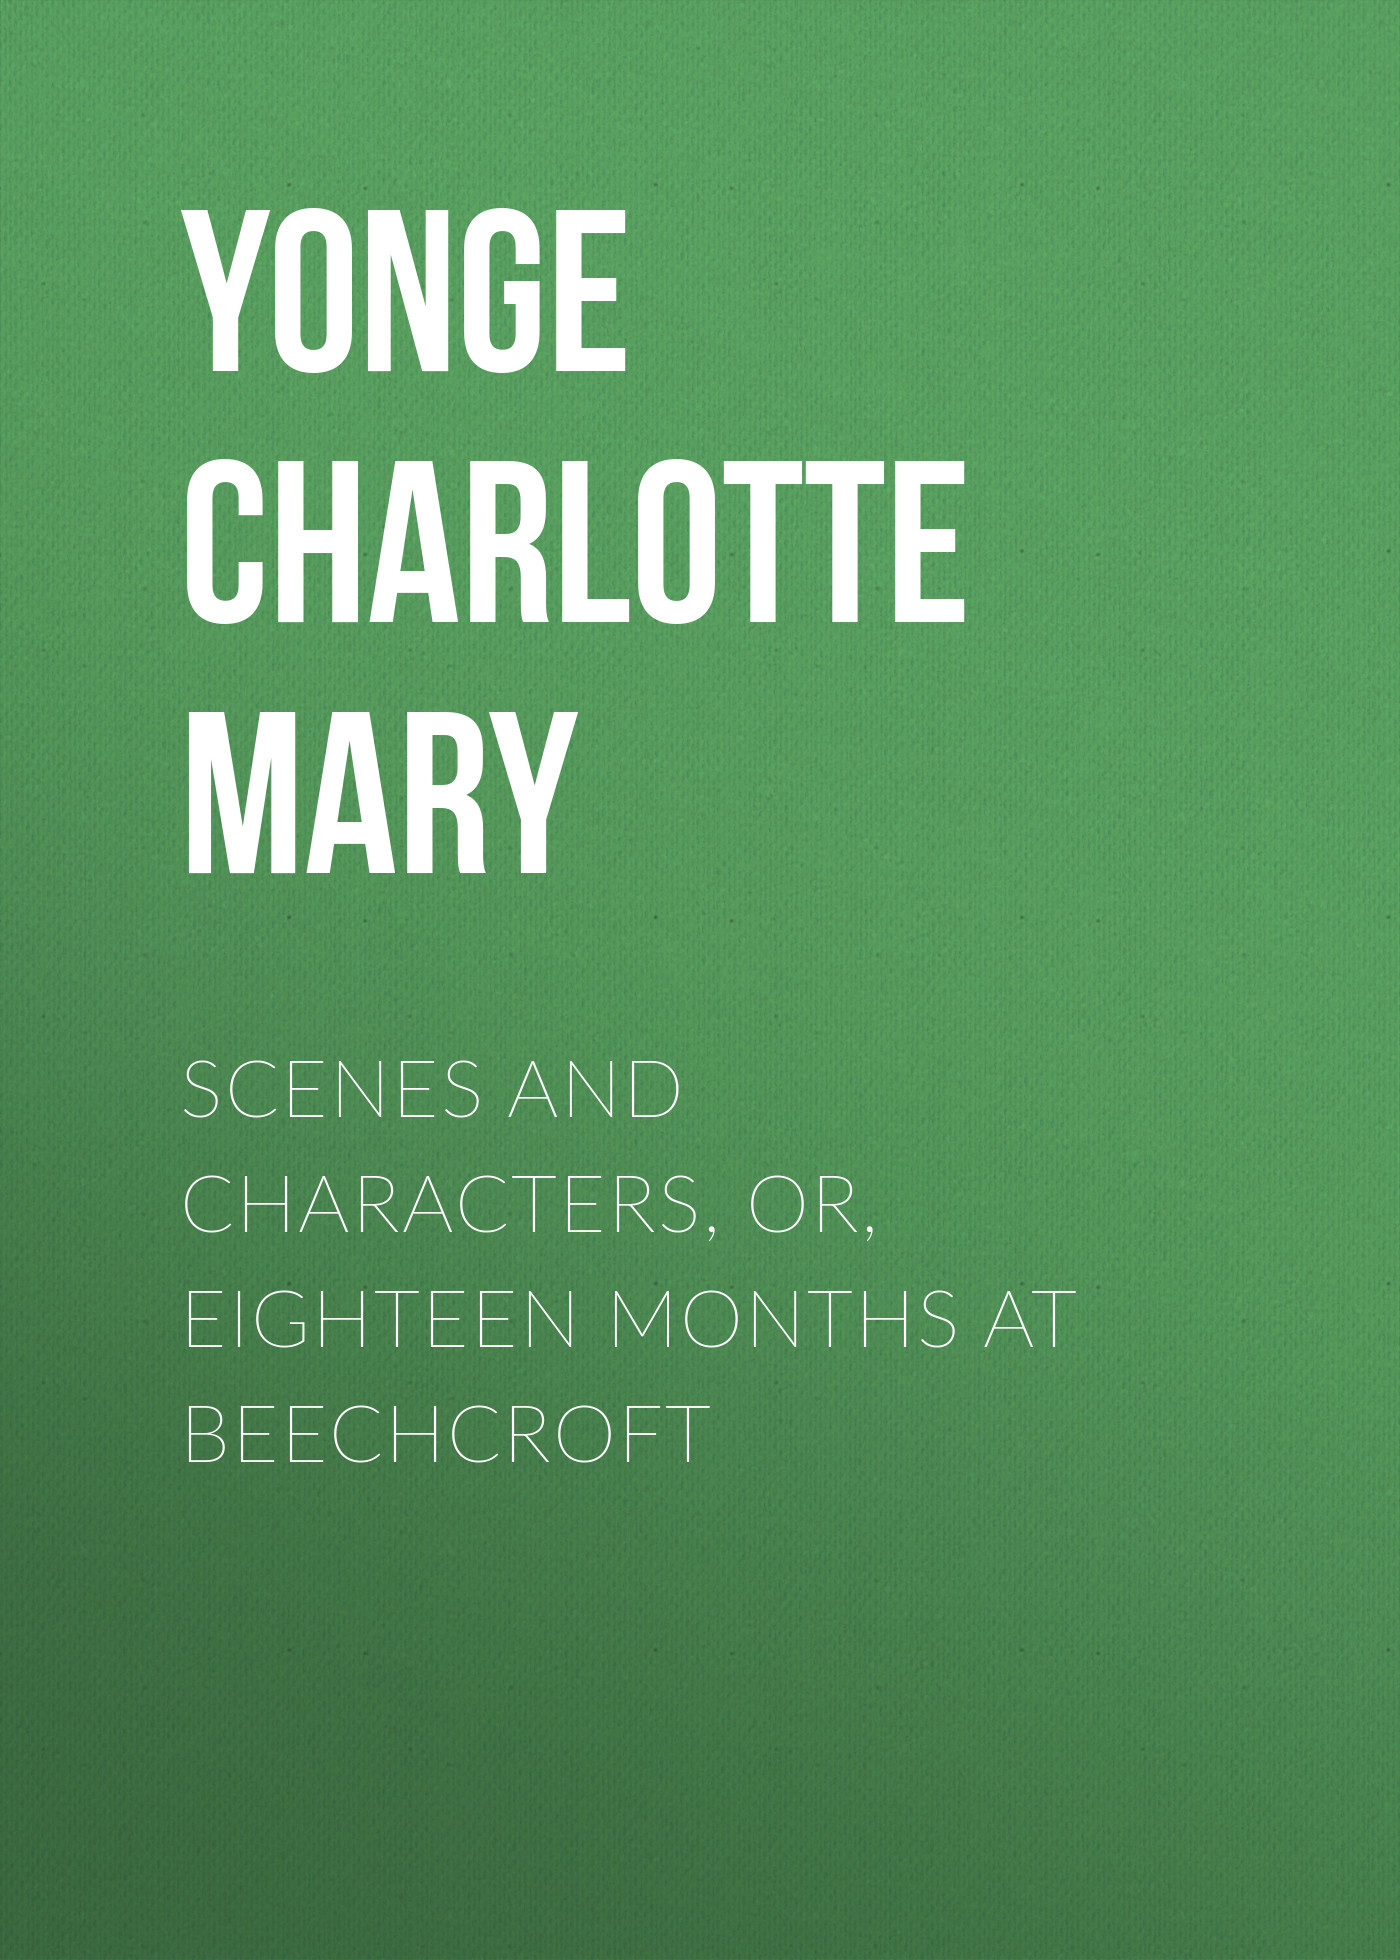 Yonge Charlotte Mary Scenes and Characters, or, Eighteen Months at Beechcroft mary berry at home